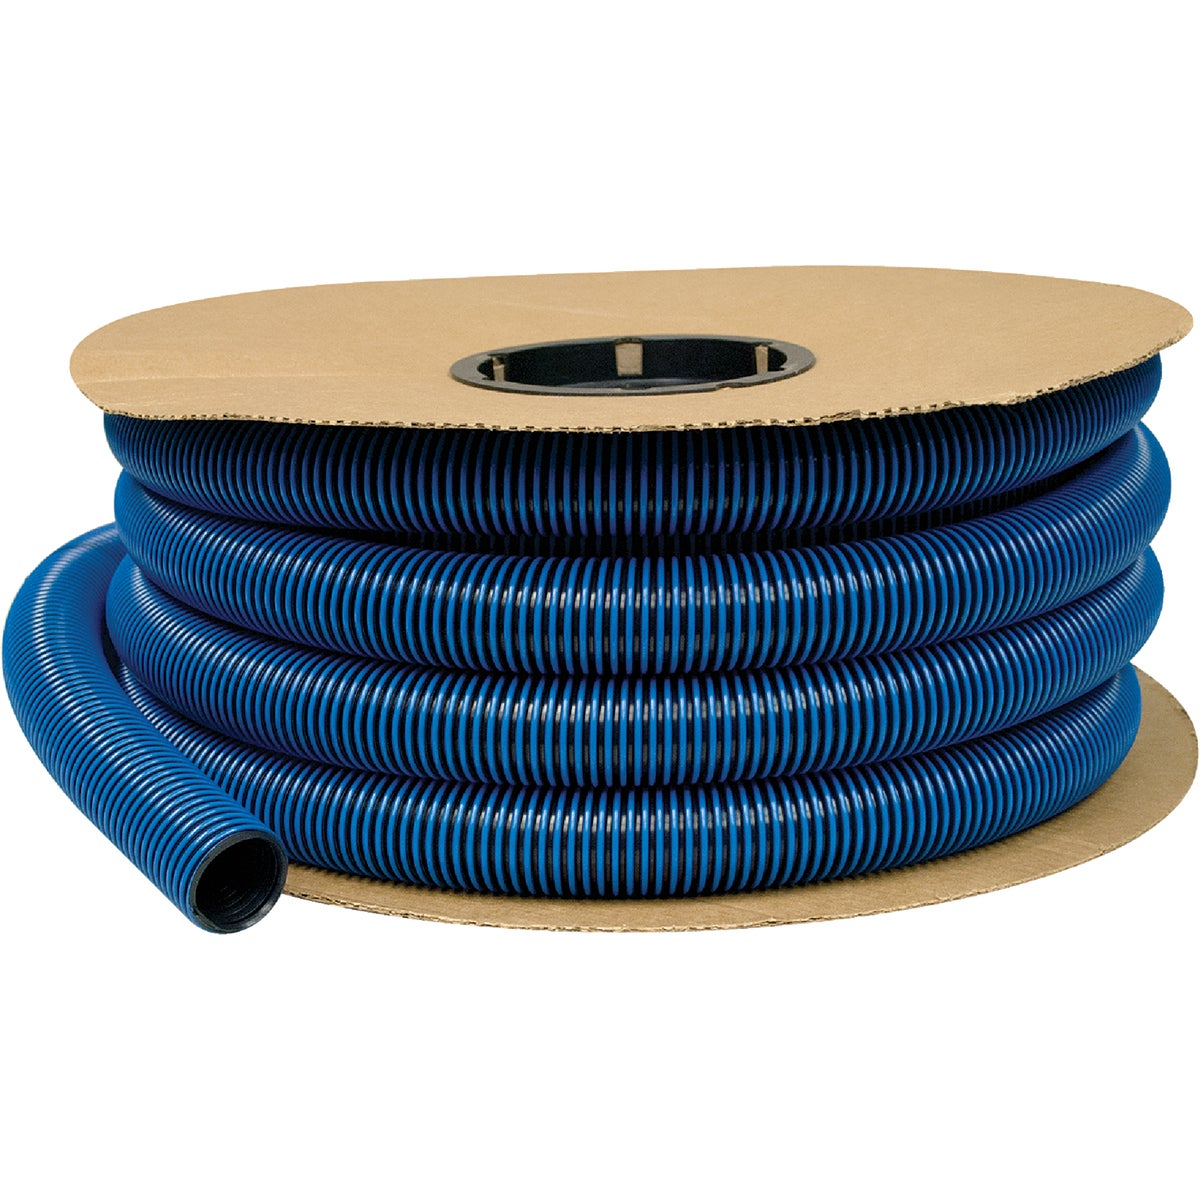 1-1/4IDX50' VACUUM HOSE - RPSP by Watts Regulator Co